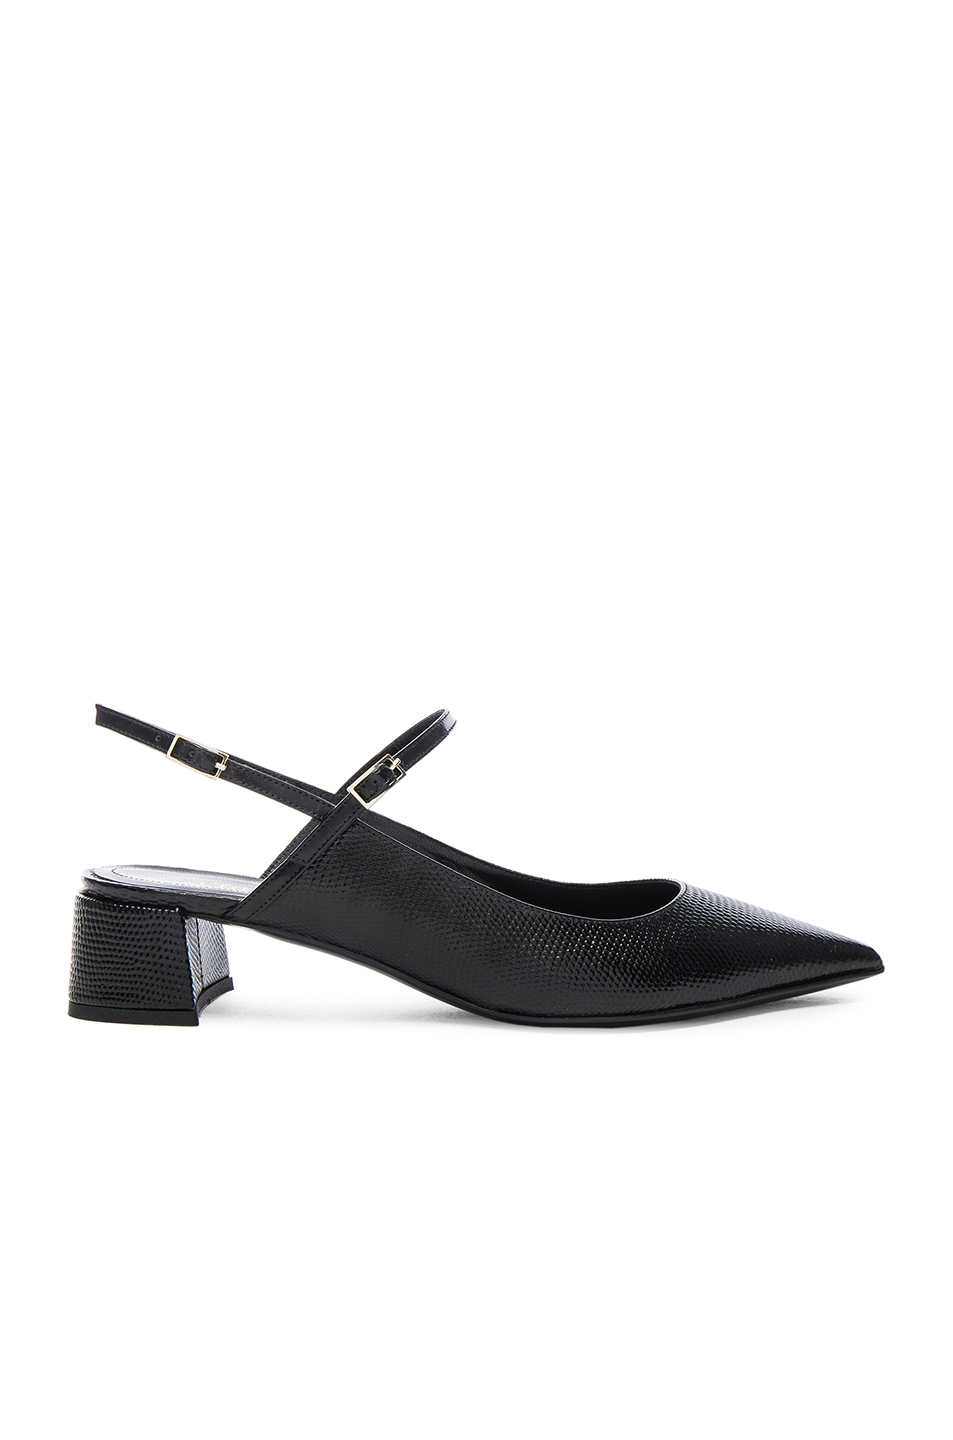 Erdem Lizard Embossed Leather Aerin Flats in Black